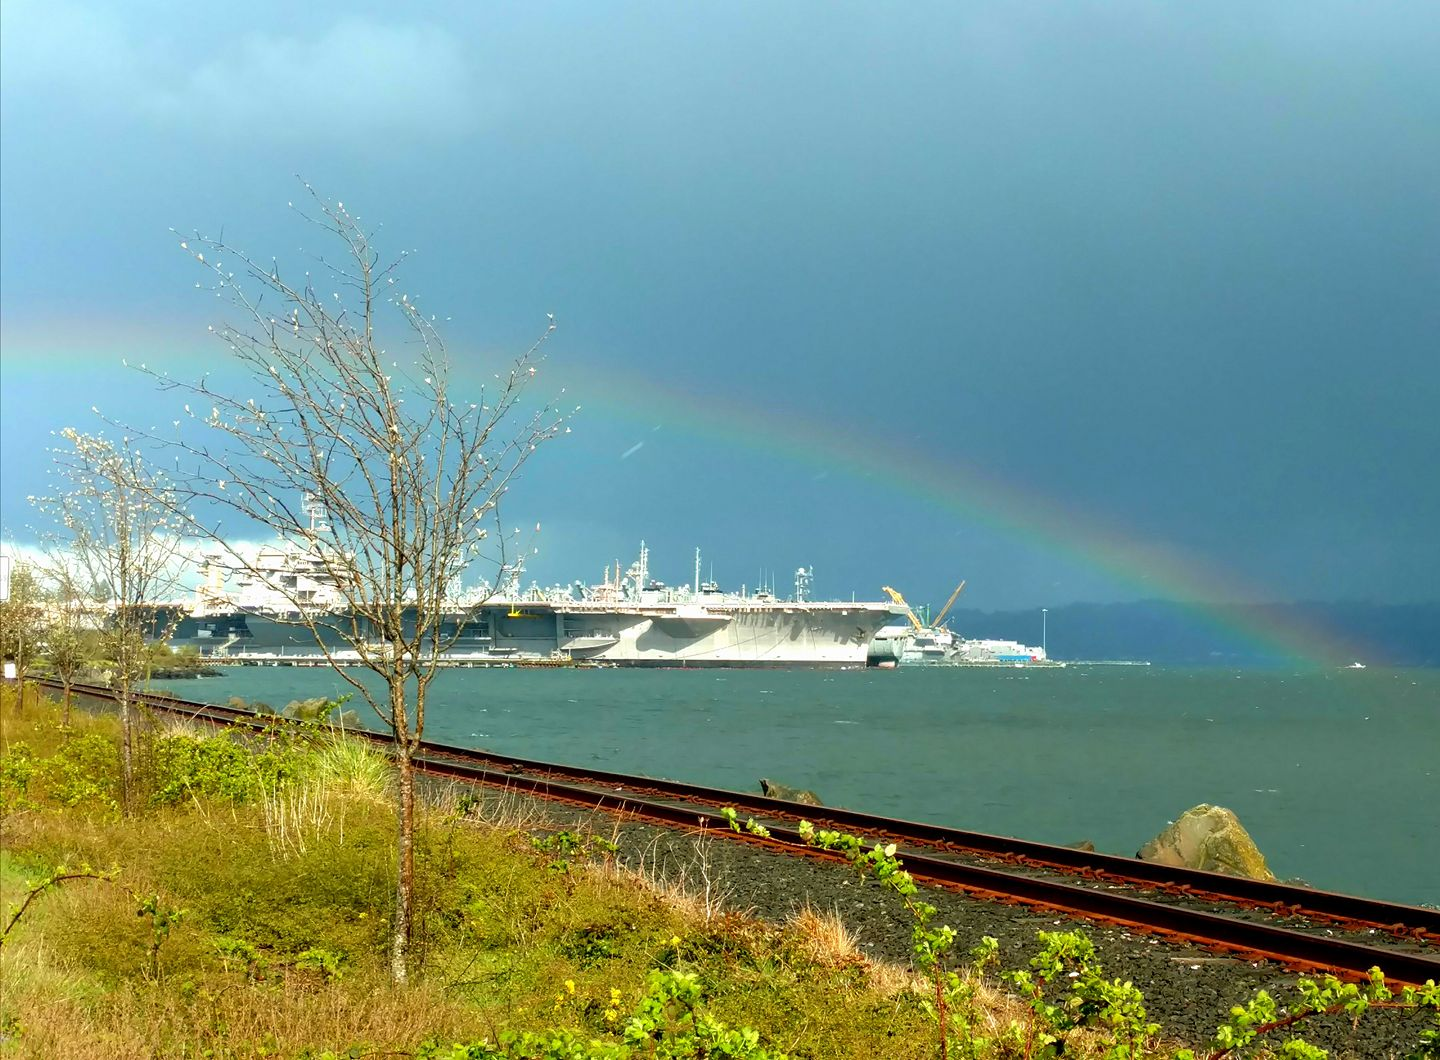 Rainbows over the Naval shipyard in Bremerton, Wash. Monday, April 10, 2017. (Photo: Stacy Stuart)